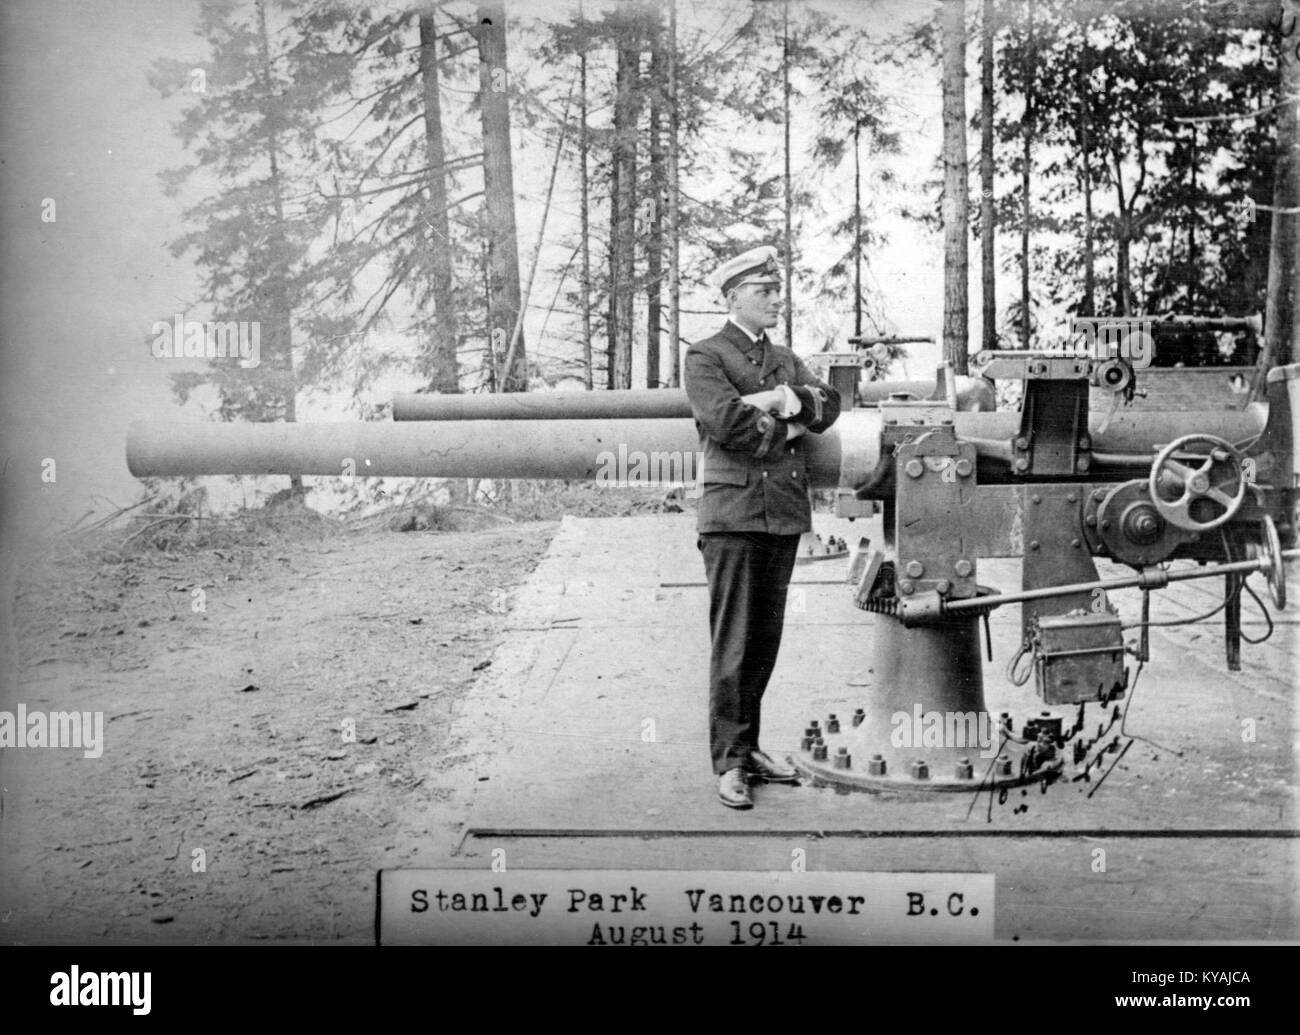 QF 4-inch guns in Stanley Park Aug 1914 - Stock Image